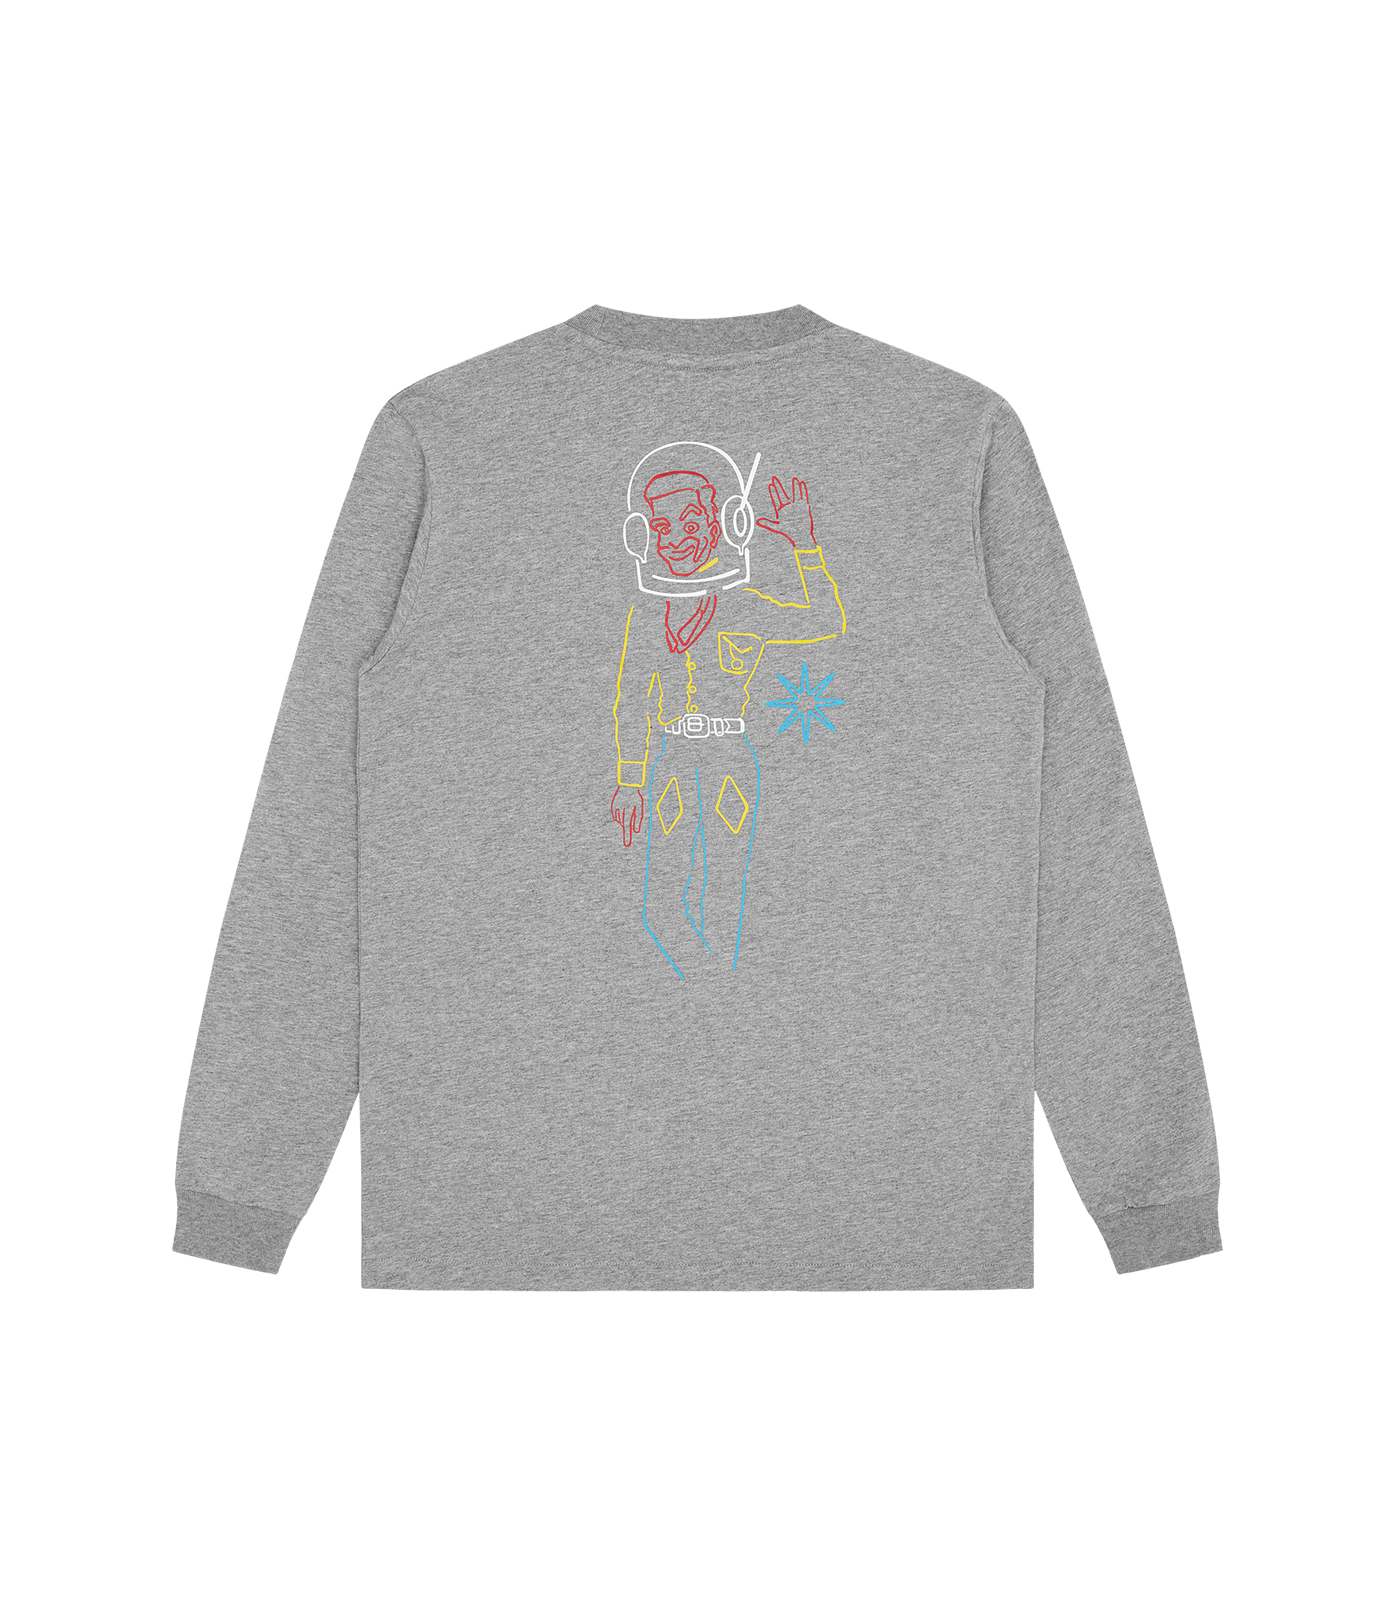 SPACE COWBOY L/S T-SHIRT - HEATHER GREY